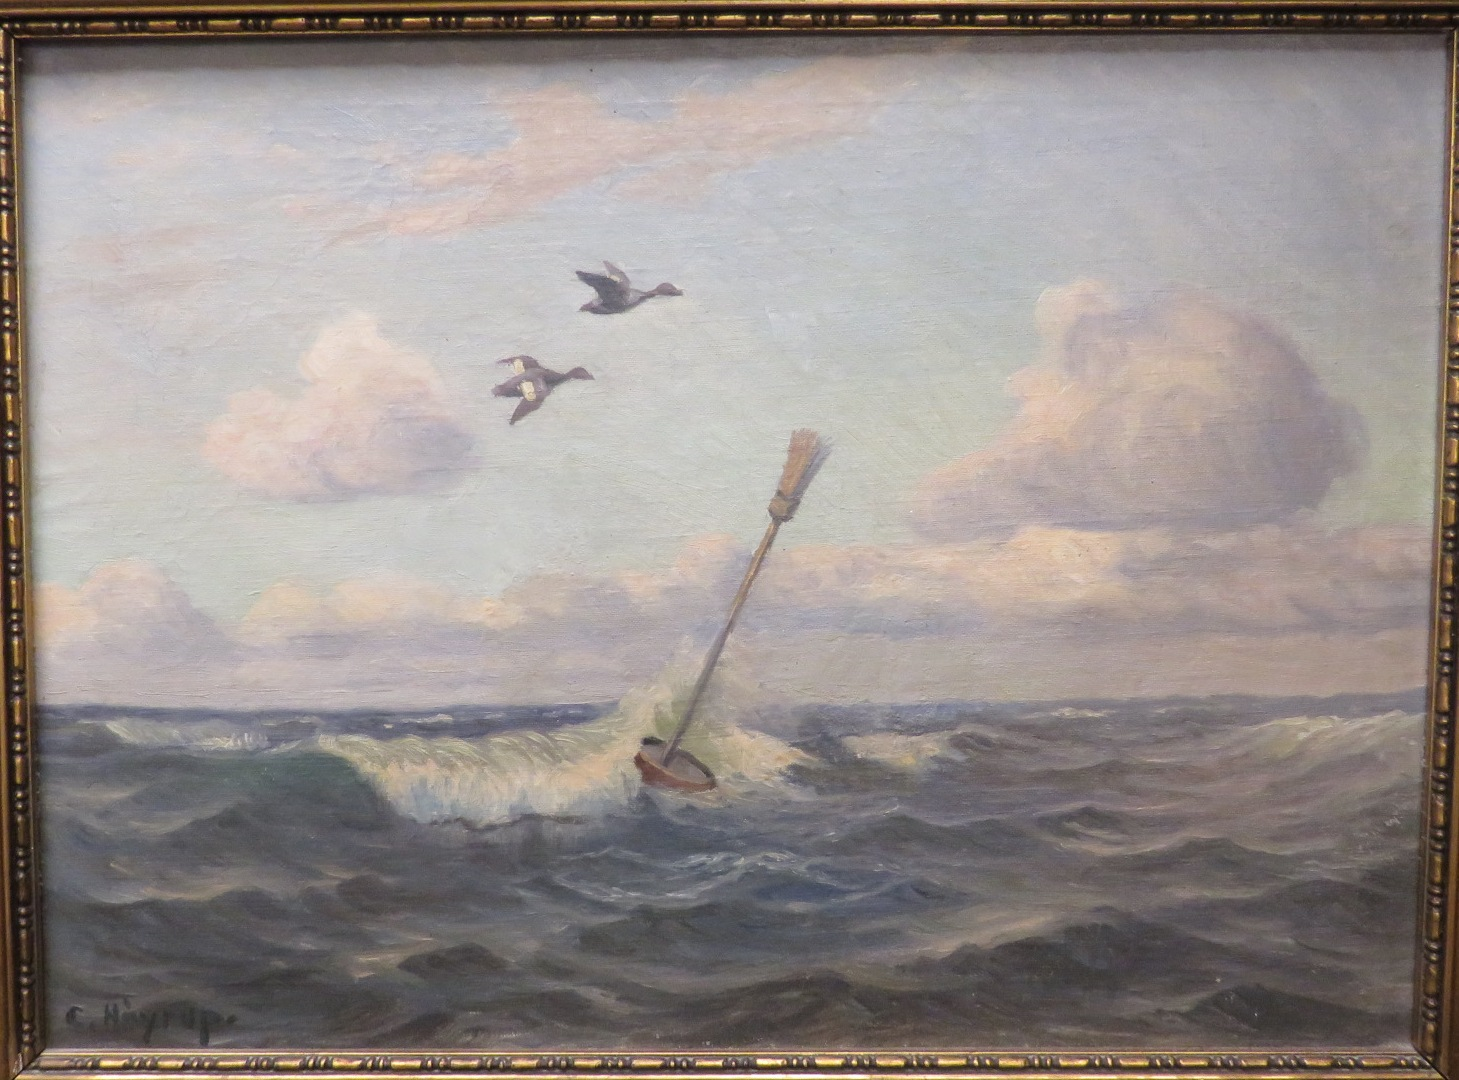 Lot 40 - Choppy sea with broom buoy and two ducks in flight, oil on canvas, (46cm x 64cm) signed C. HOYRUP.